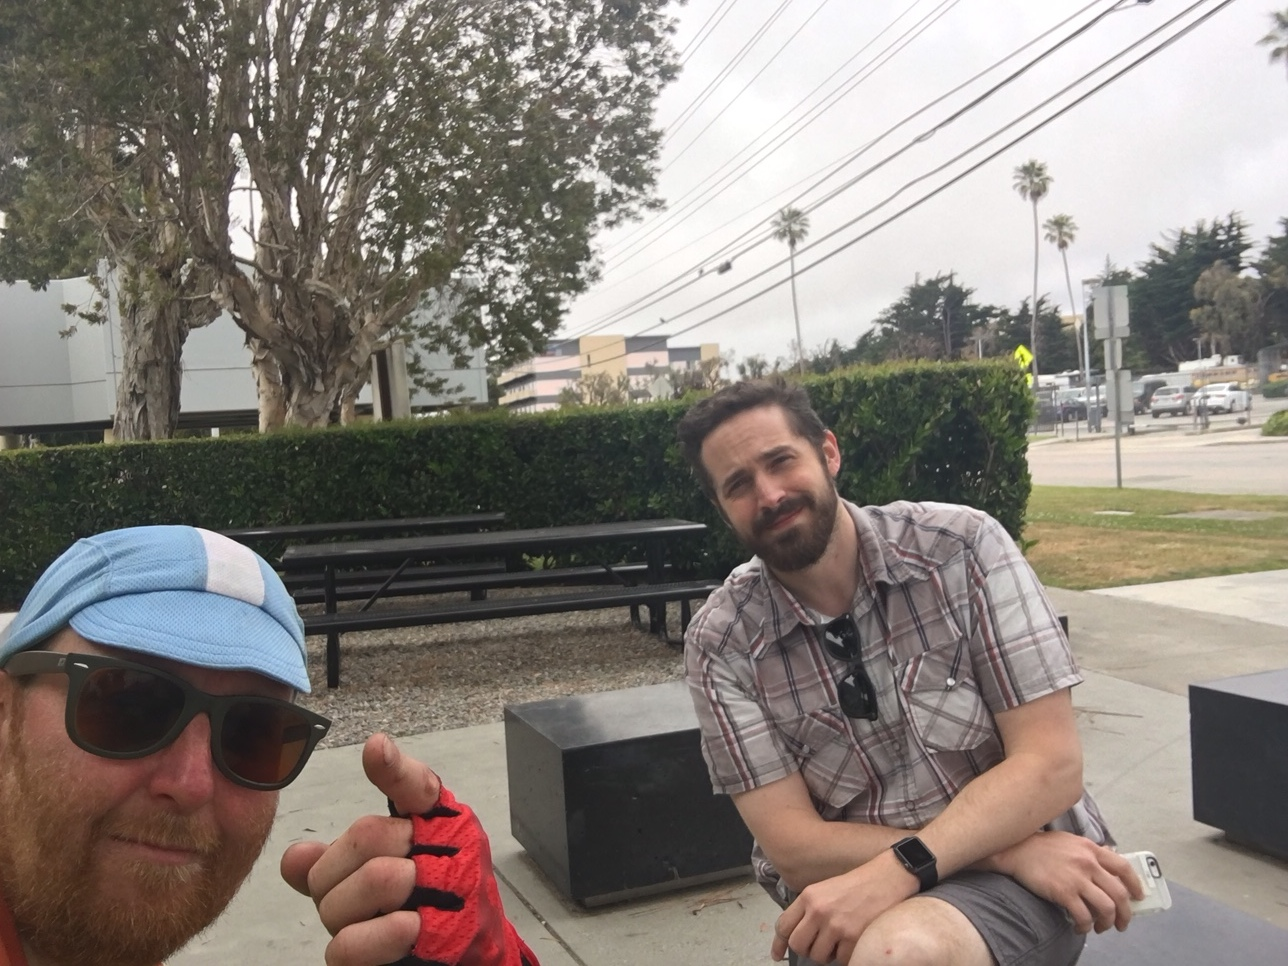 My friend Toby, from Washington, PA, found me in the middle of Santa Cruz!